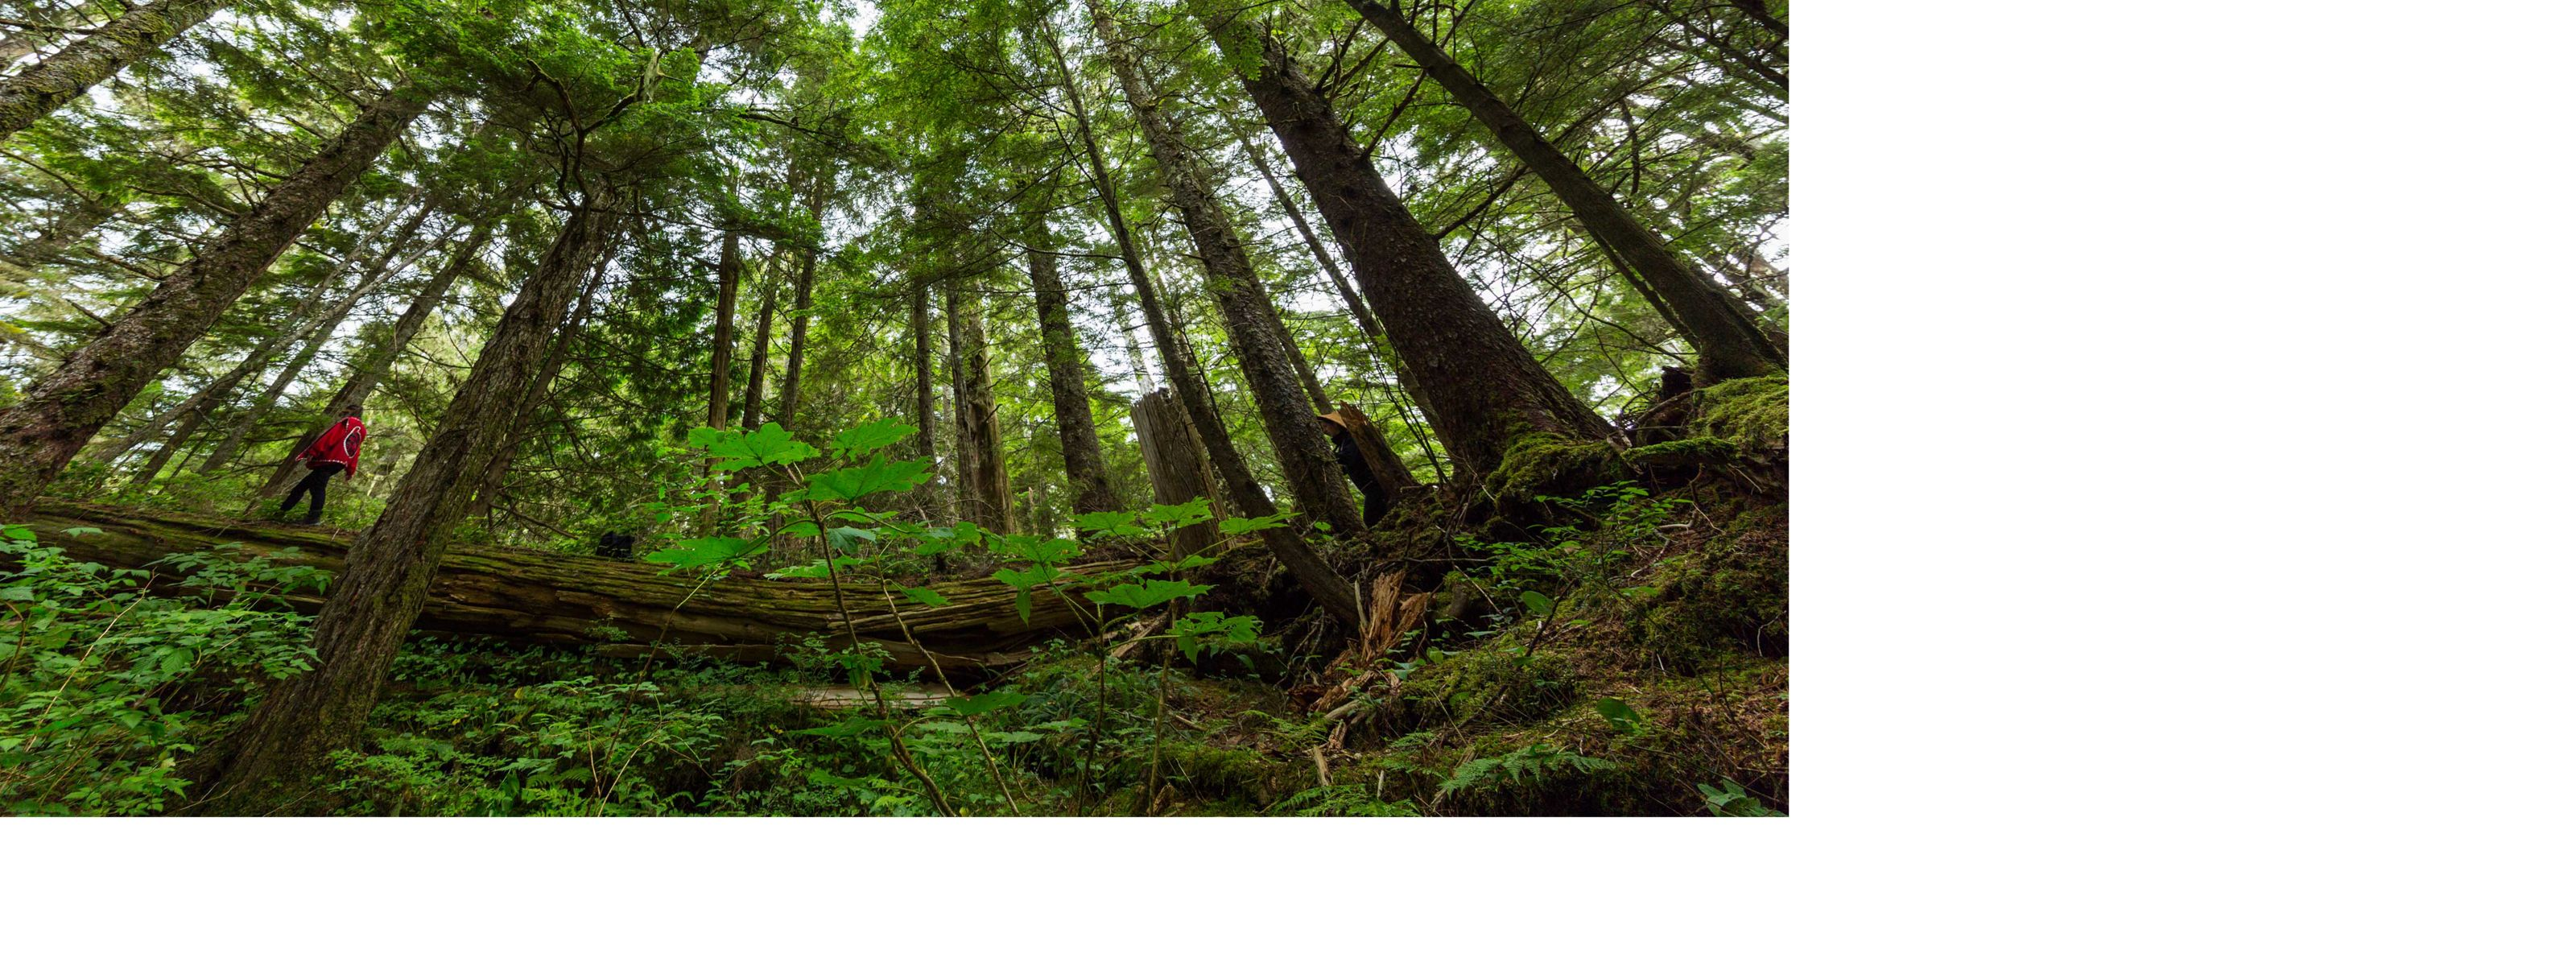 Looking up from the ancient Big House as Laverne Barton walks along one of the fallen logs in Dis'ju, Great Bear Rainforest, BC, Canada.